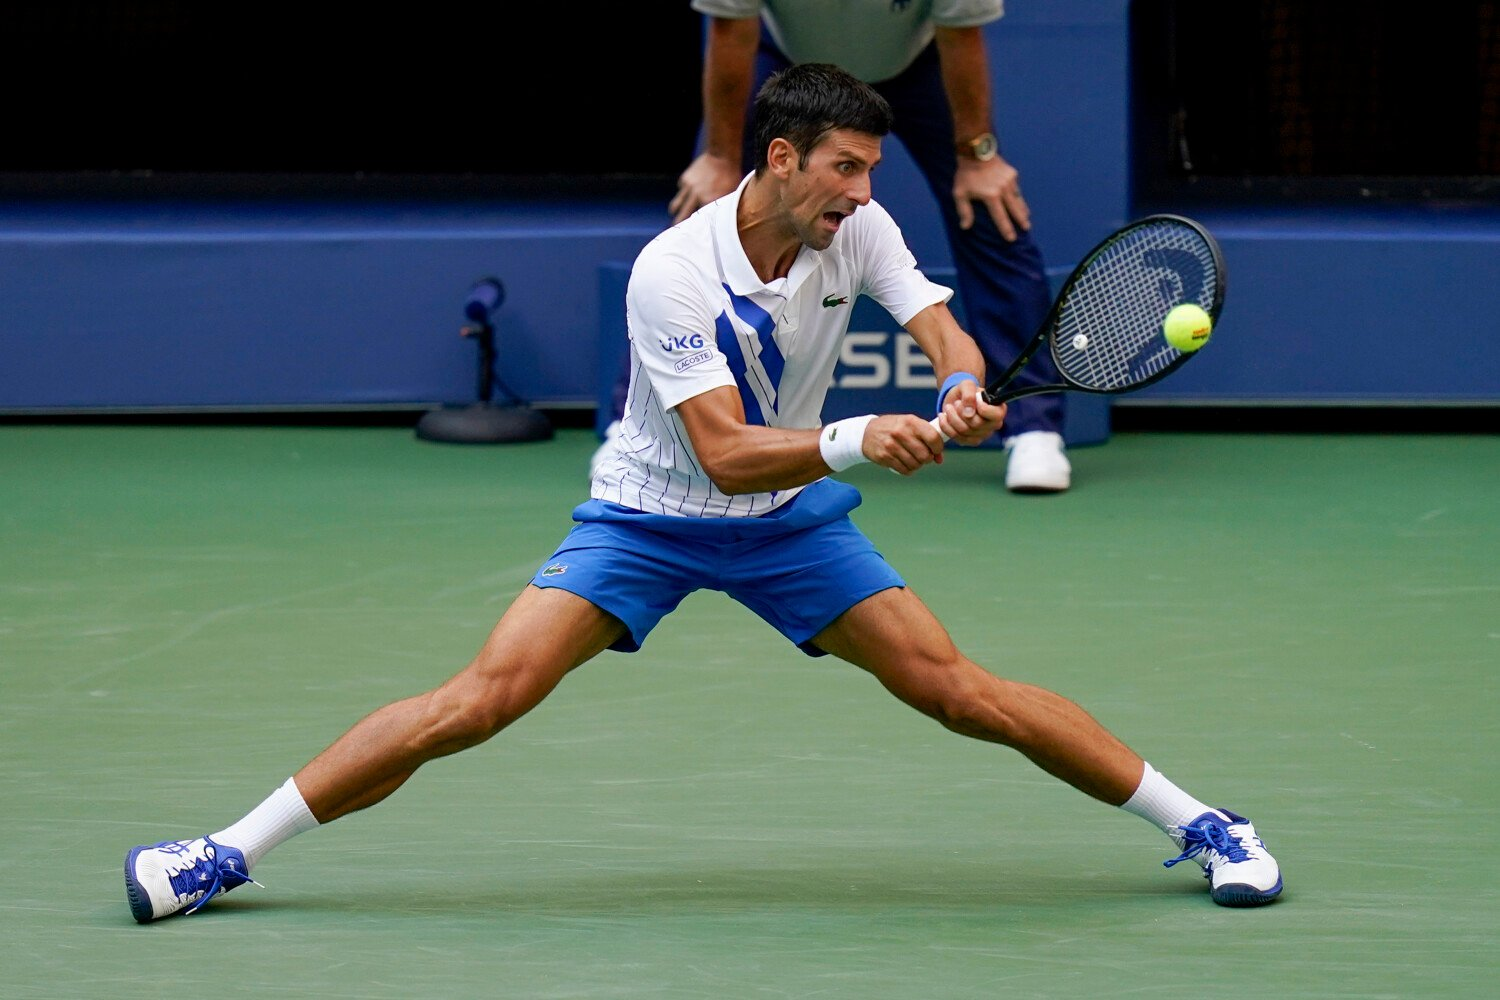 Djokovic Out Of U S Open After Hitting Line Judge With Ball Portland Press Herald